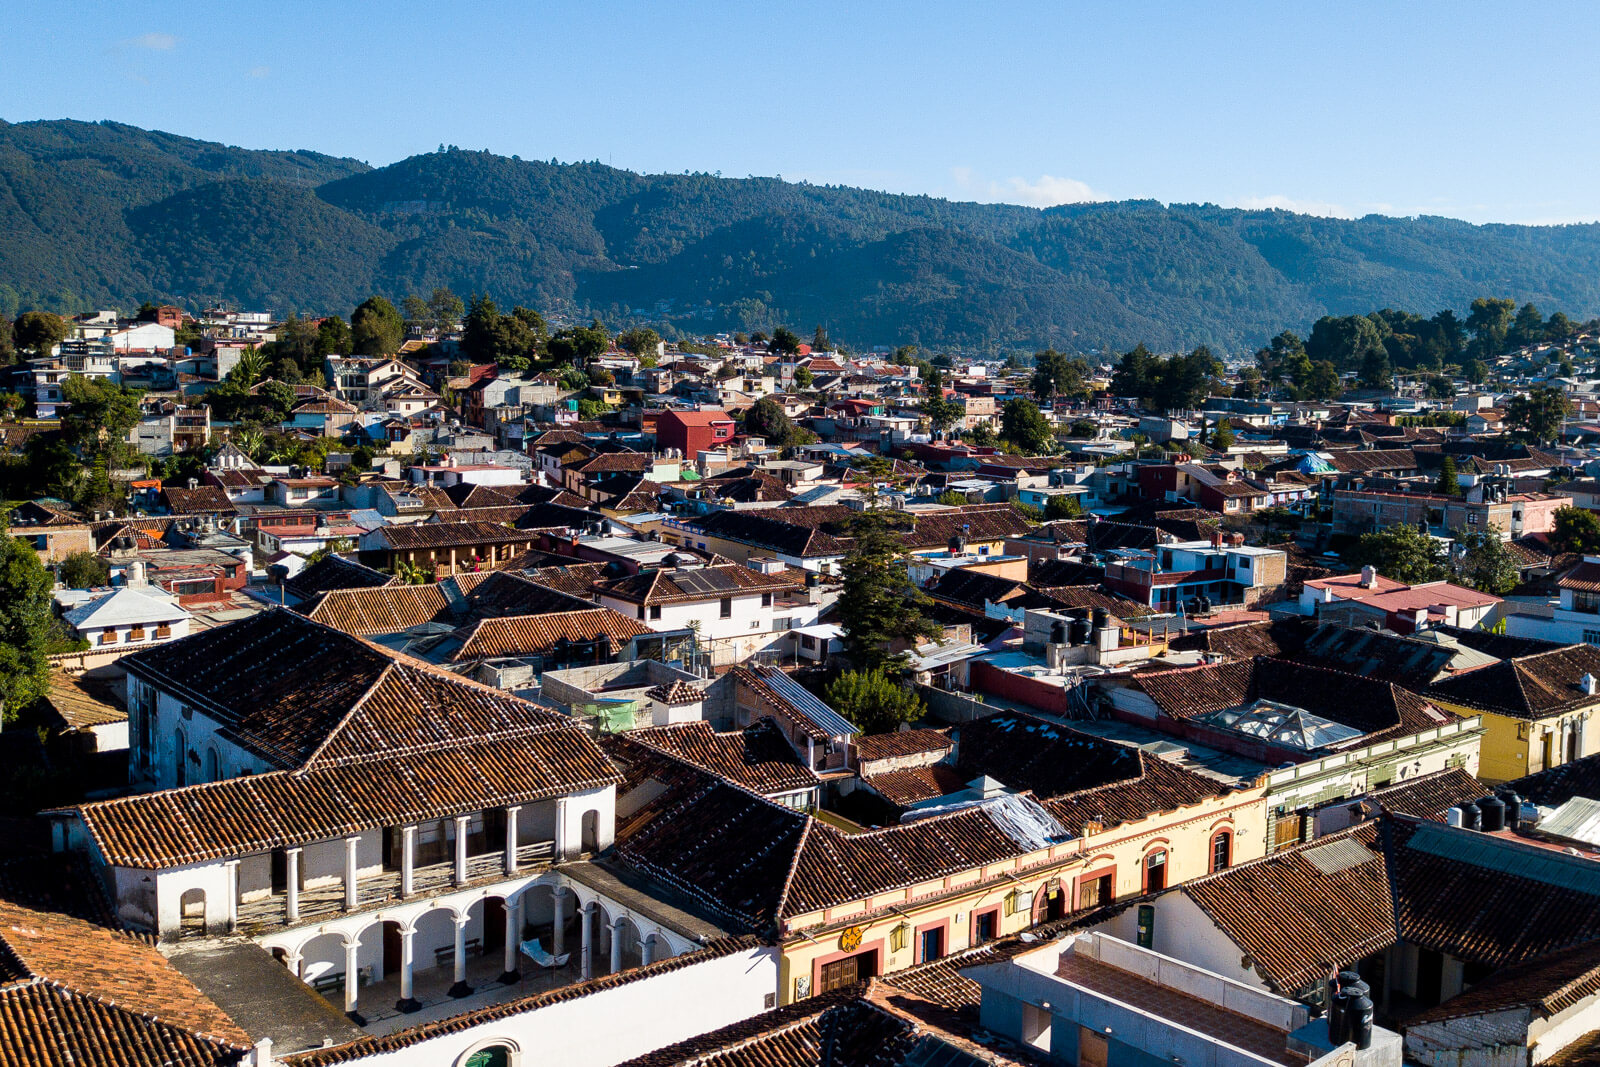 The magical town of San Cristobal de las Casas, Chiapas